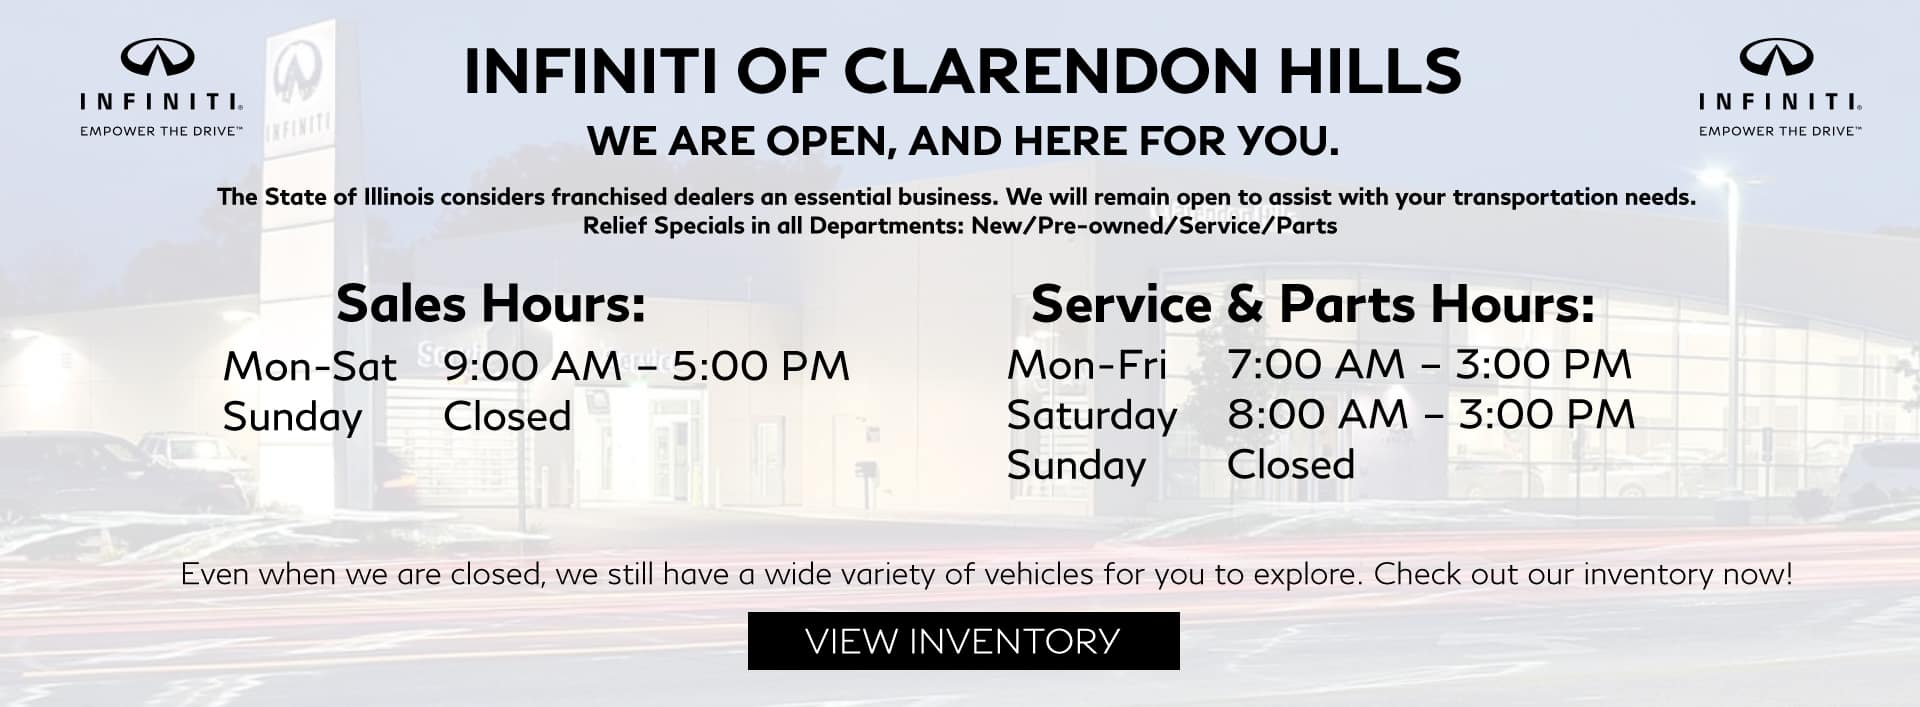 COVID-19 new hours for INFINITI of Clarendon Hills.